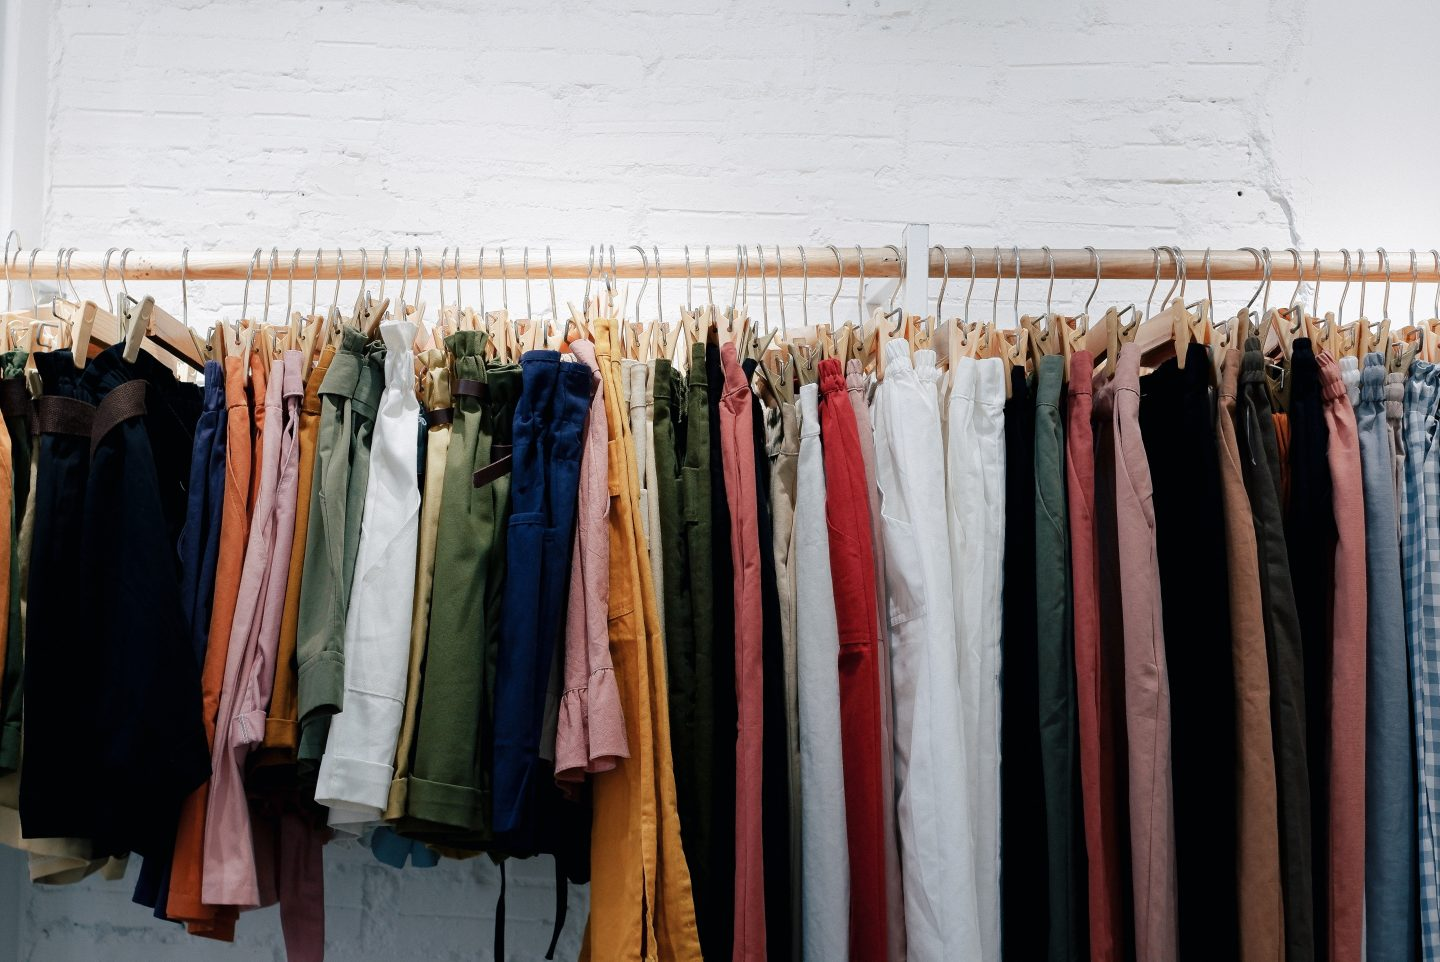 12 thrifting tips to help you shop like a pro